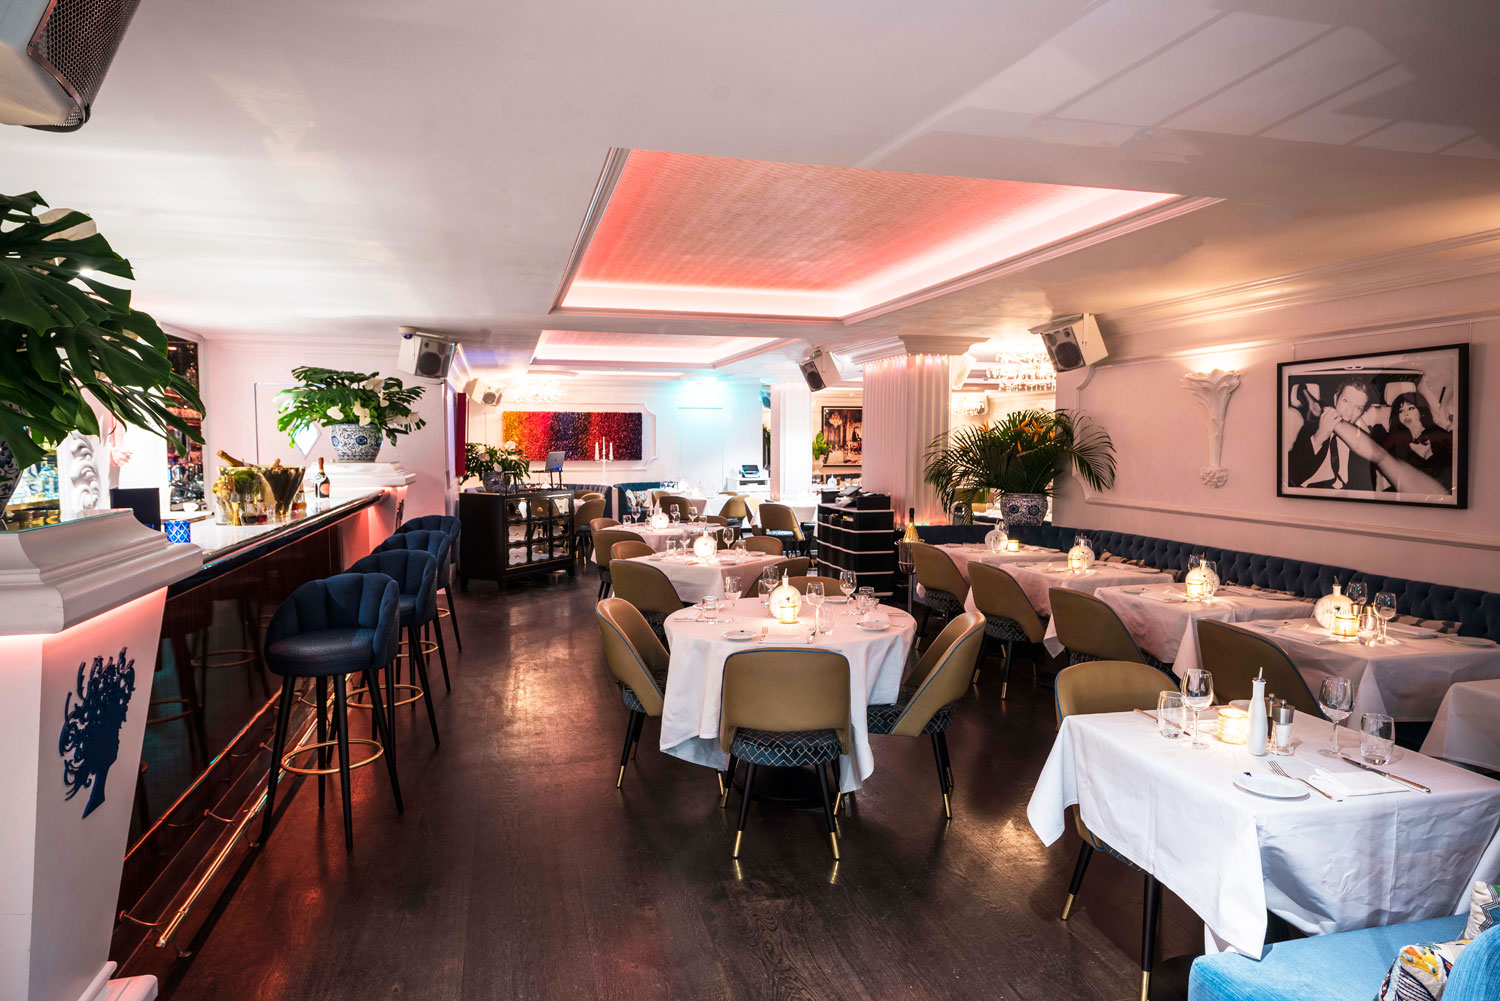 French Cuisine With Mayfair Flair For Brunch At Bagatelle